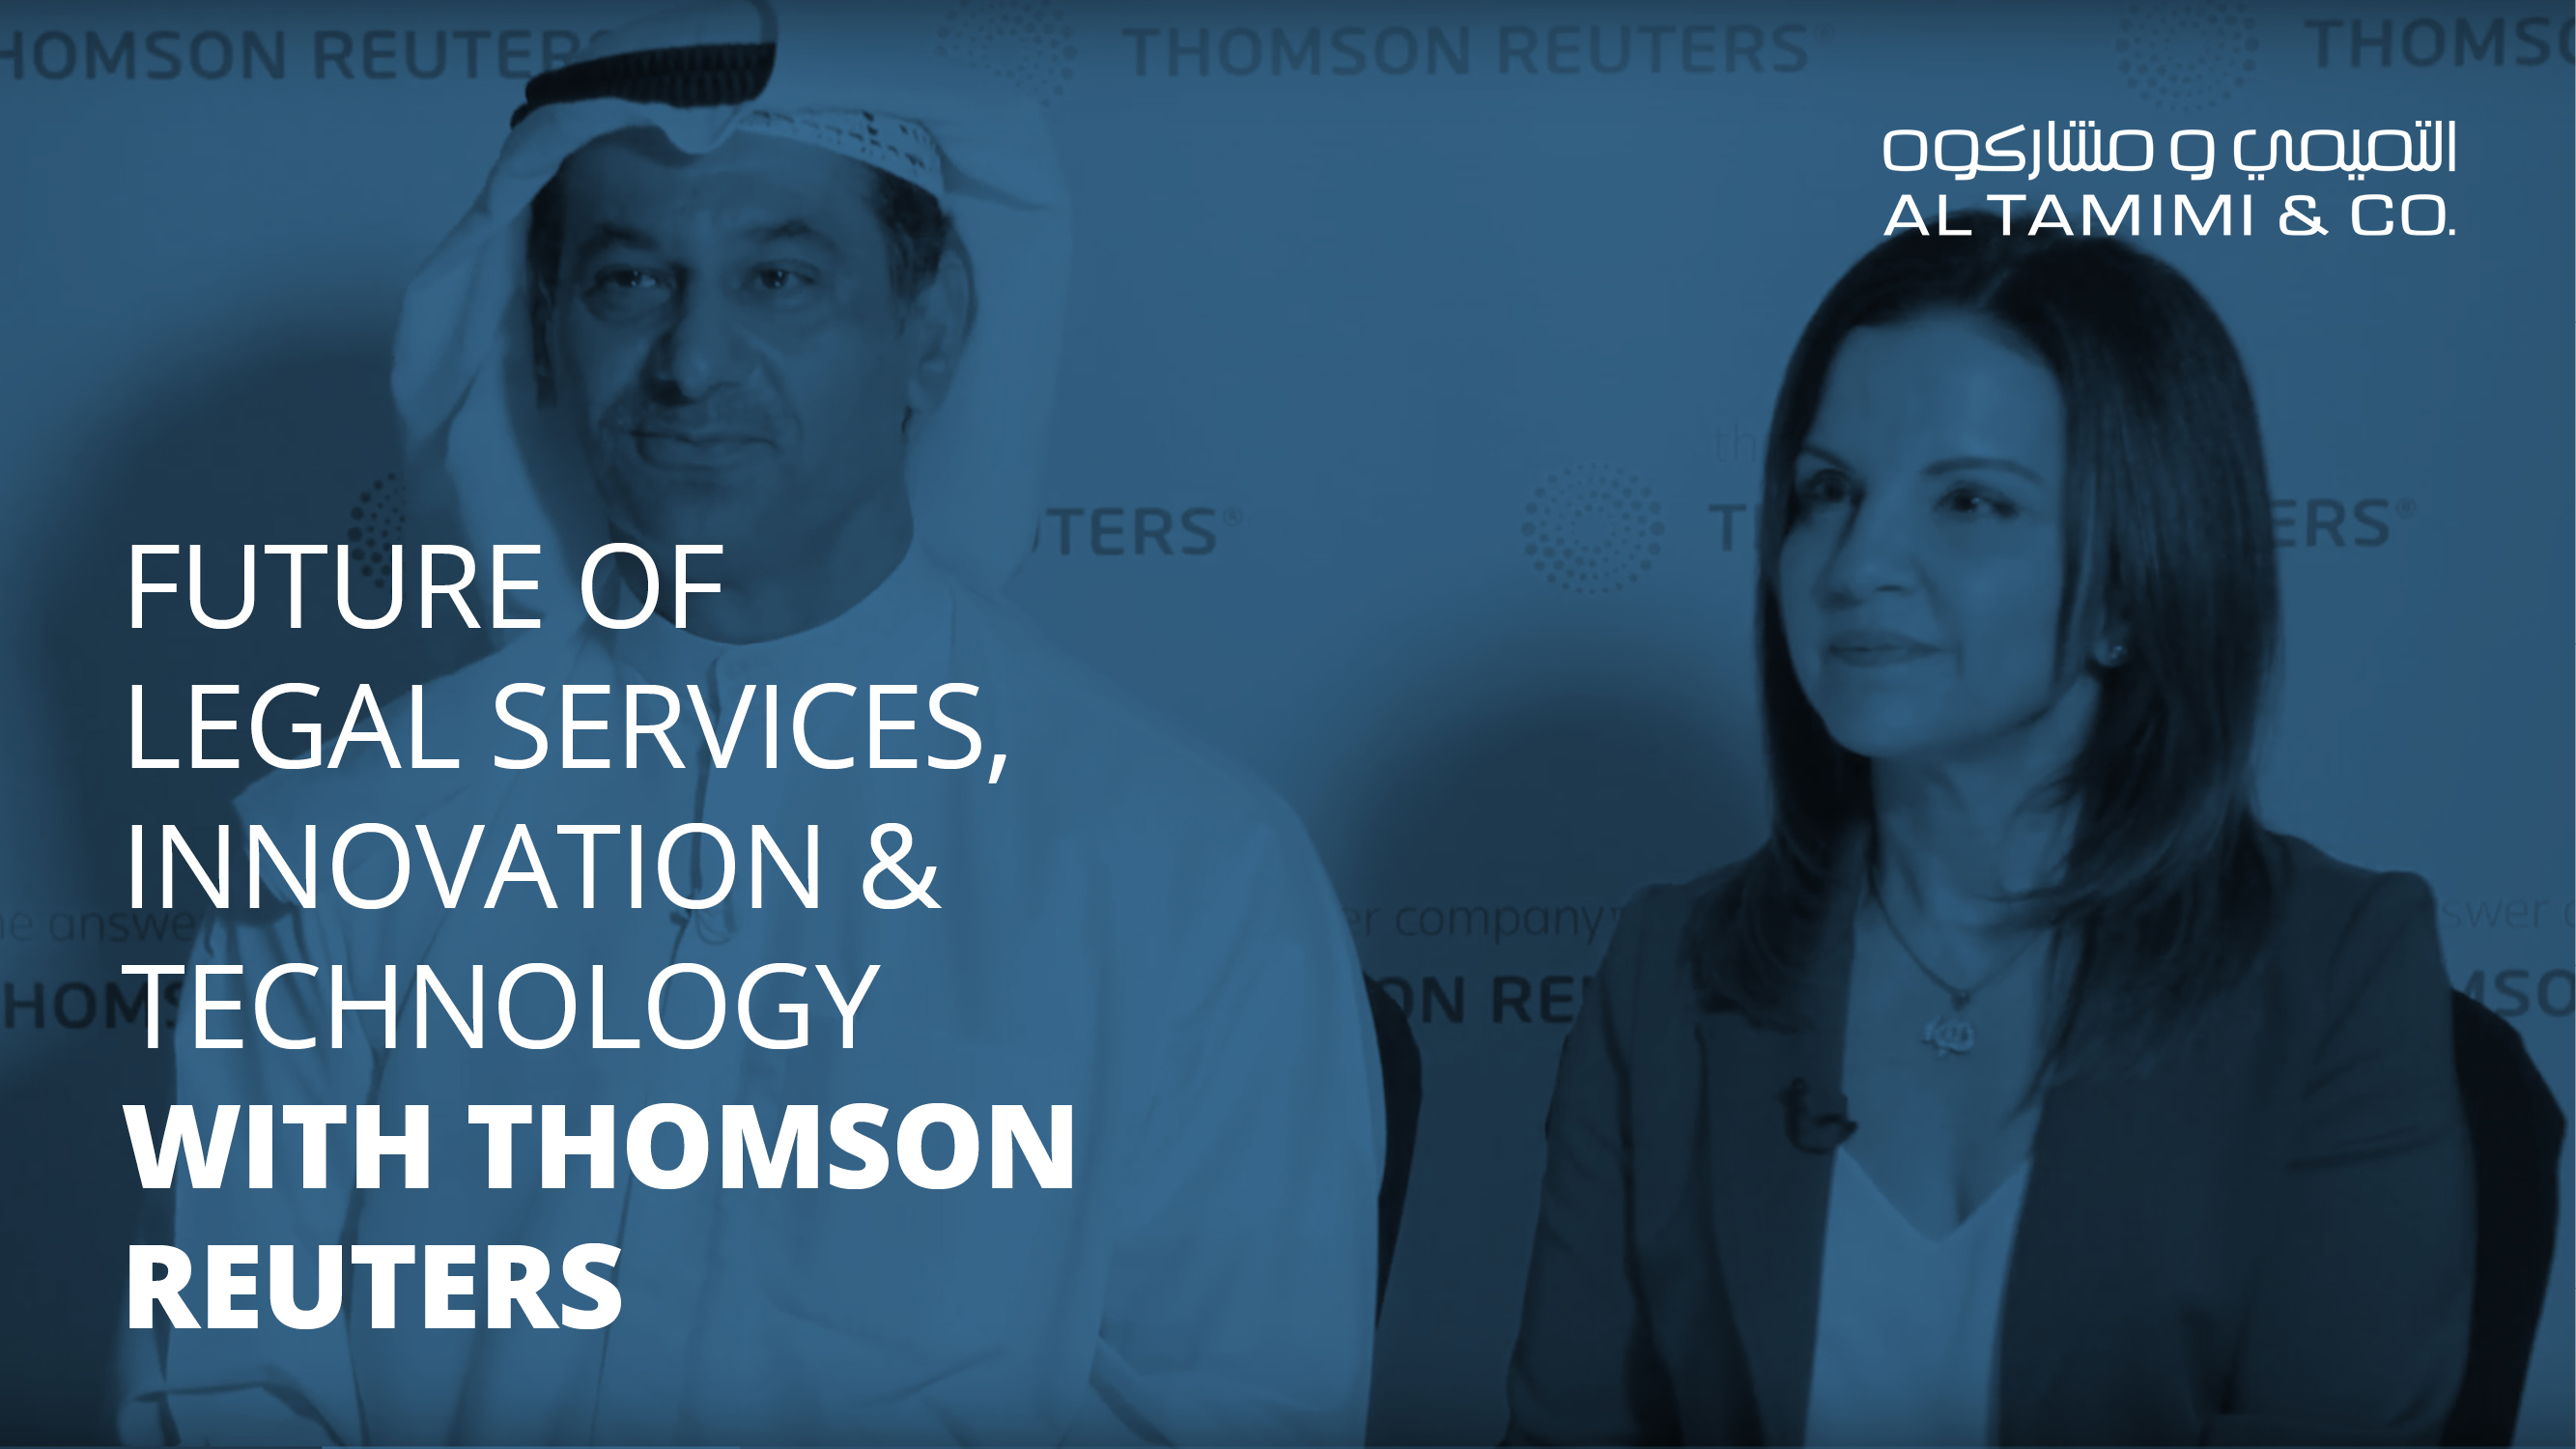 The Future of Legal Services – Al Tamimi & Company and Thomson Reuters